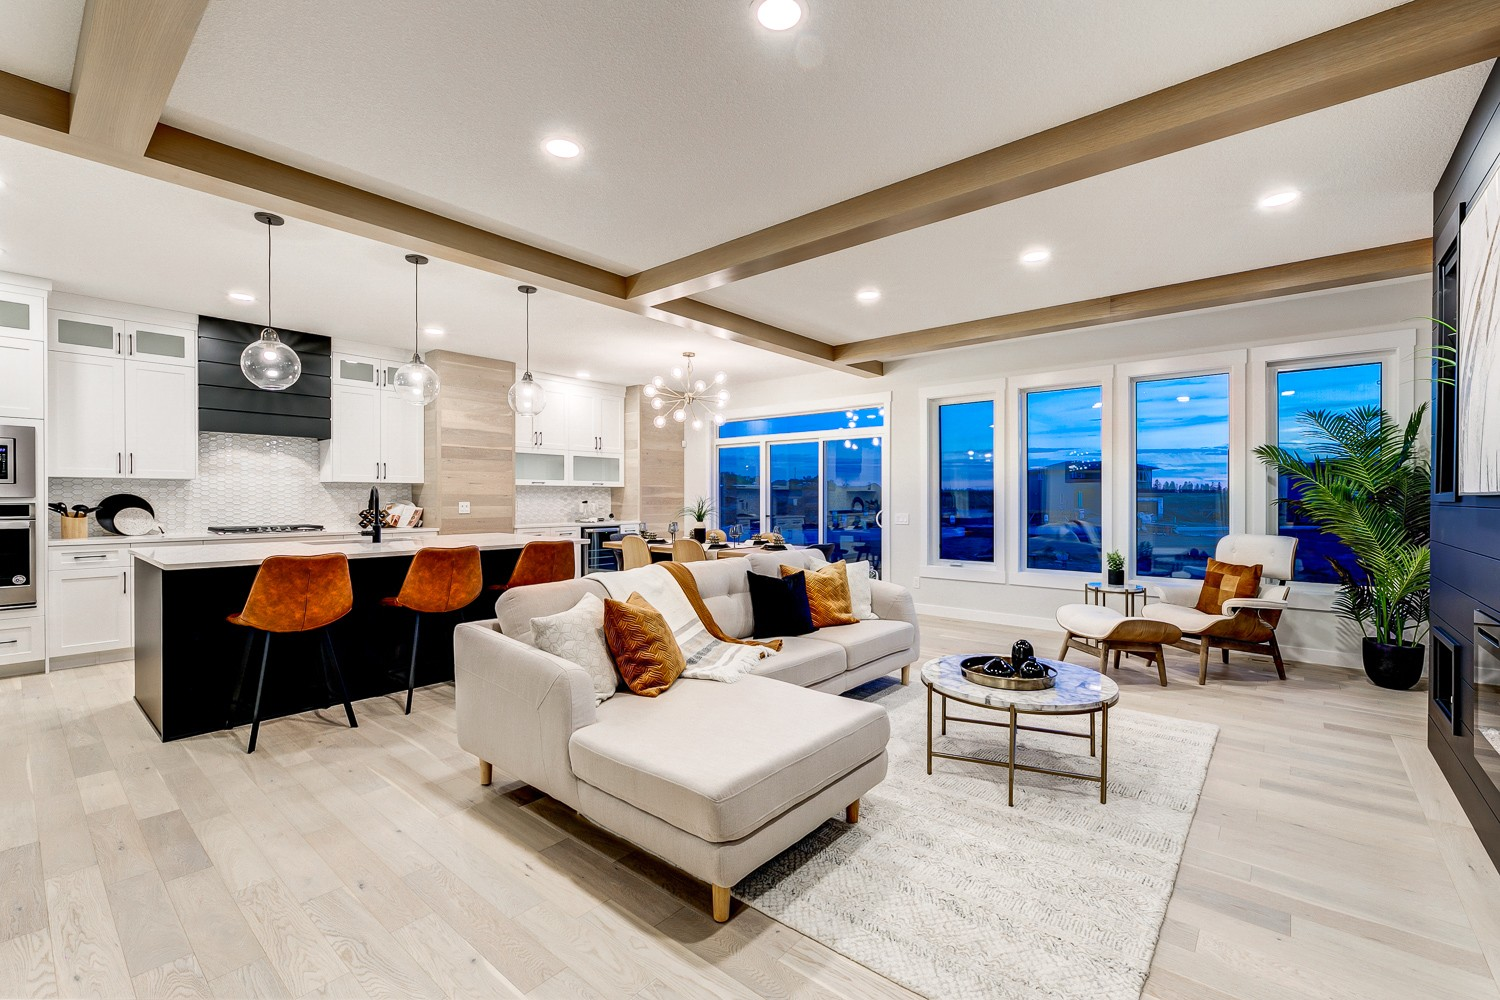 Showhome by City Homes Master Builder in Kinglet by Big Lake